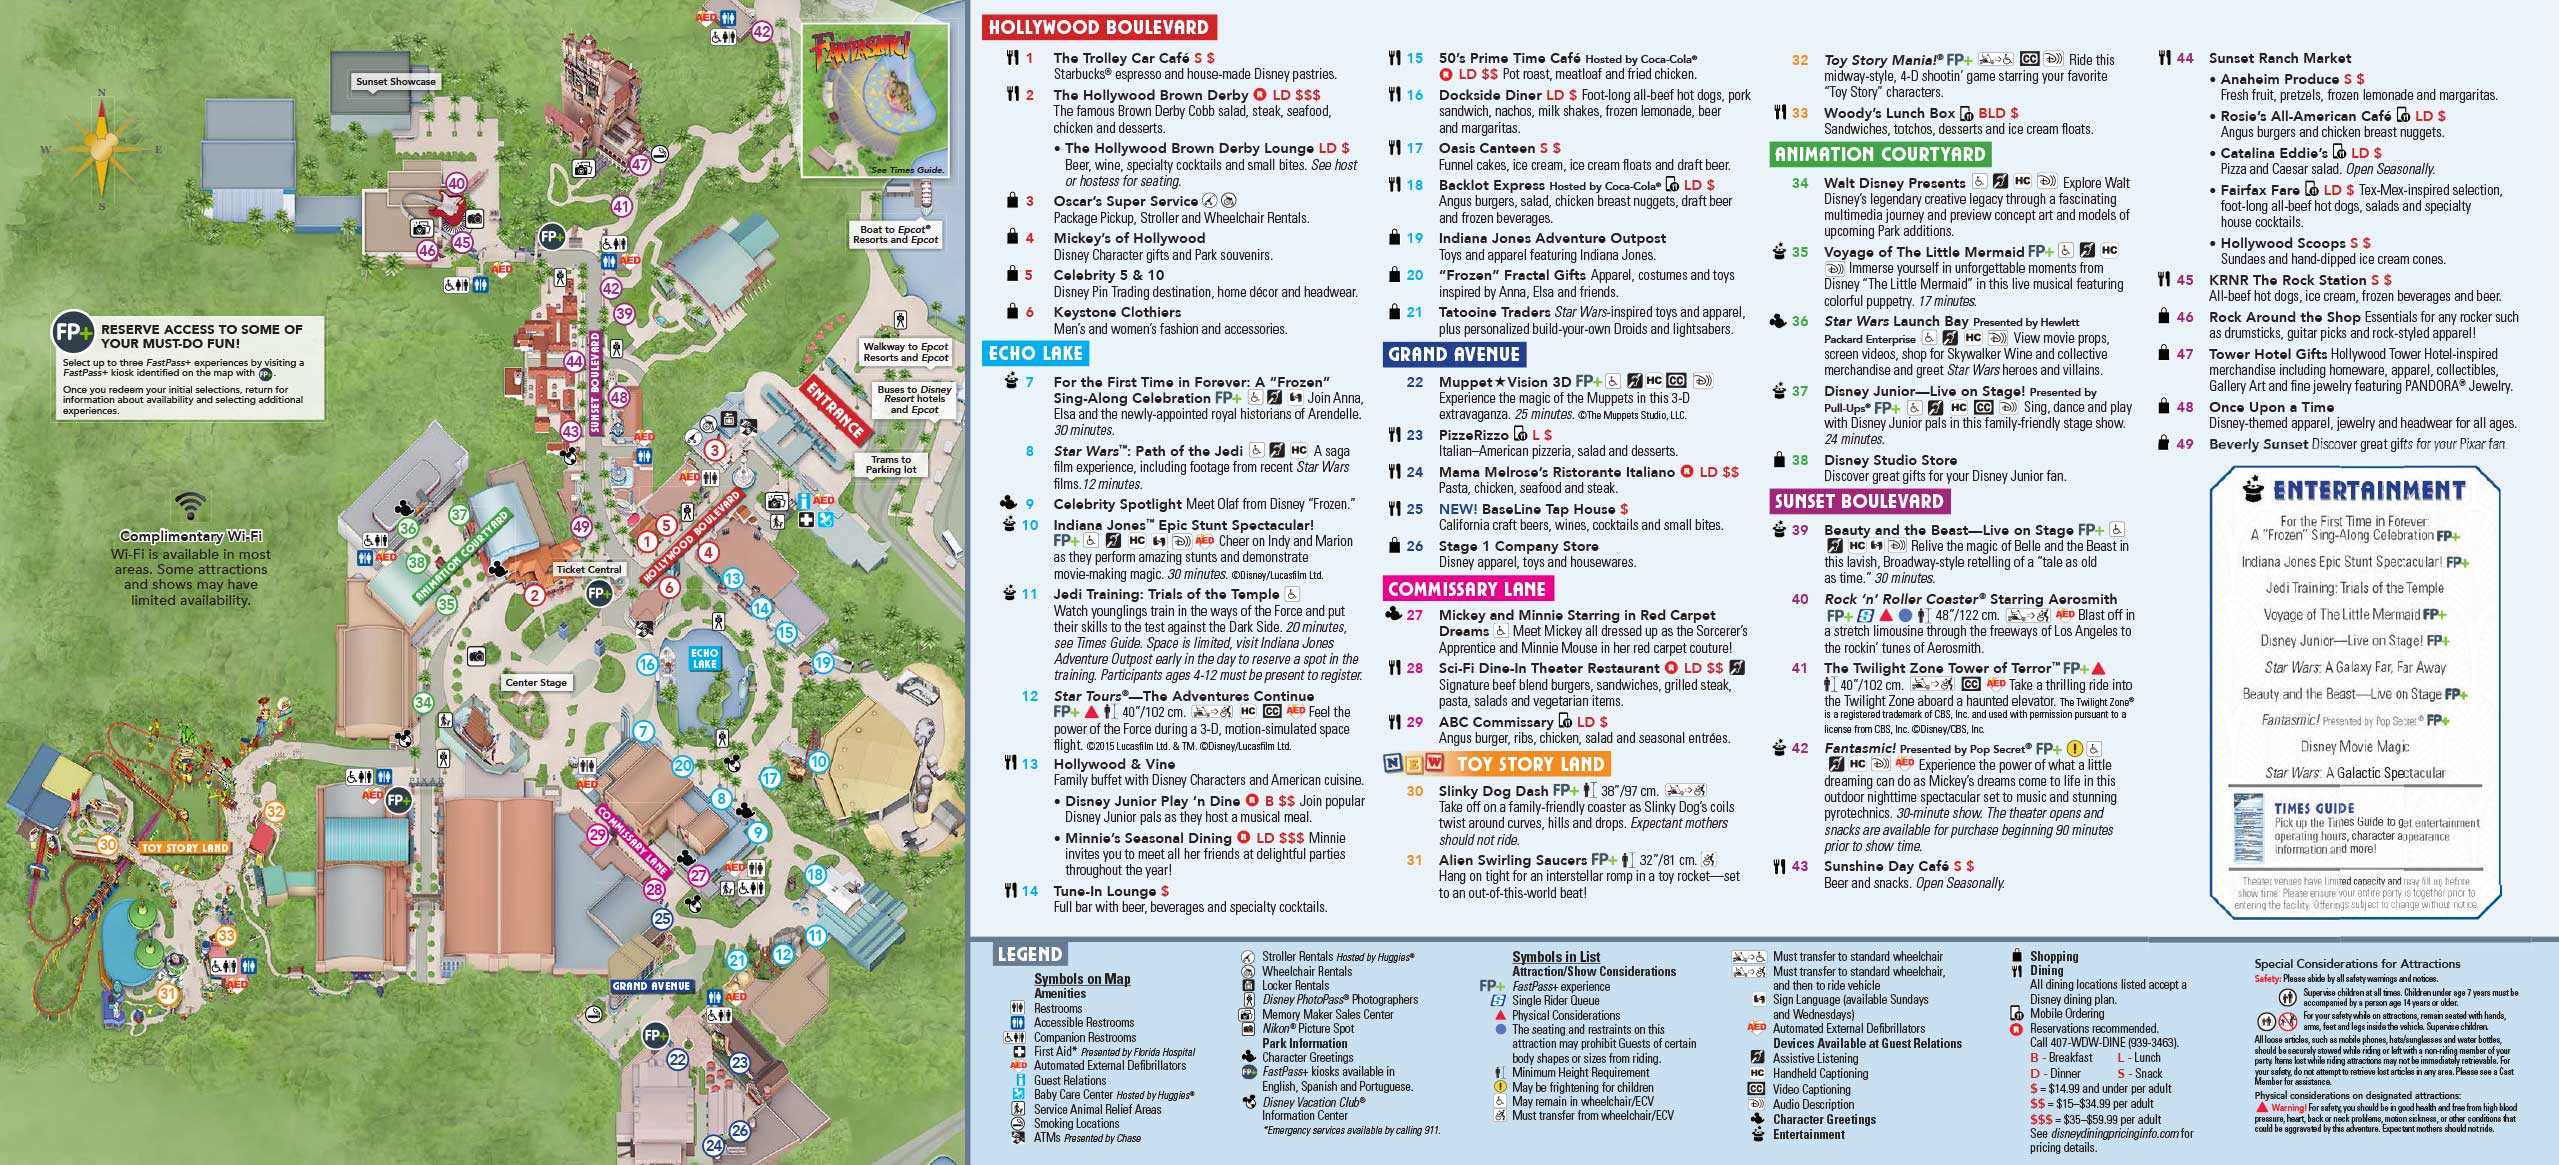 PHOTOS   New Guide Map for Disney's Hollywood Studios